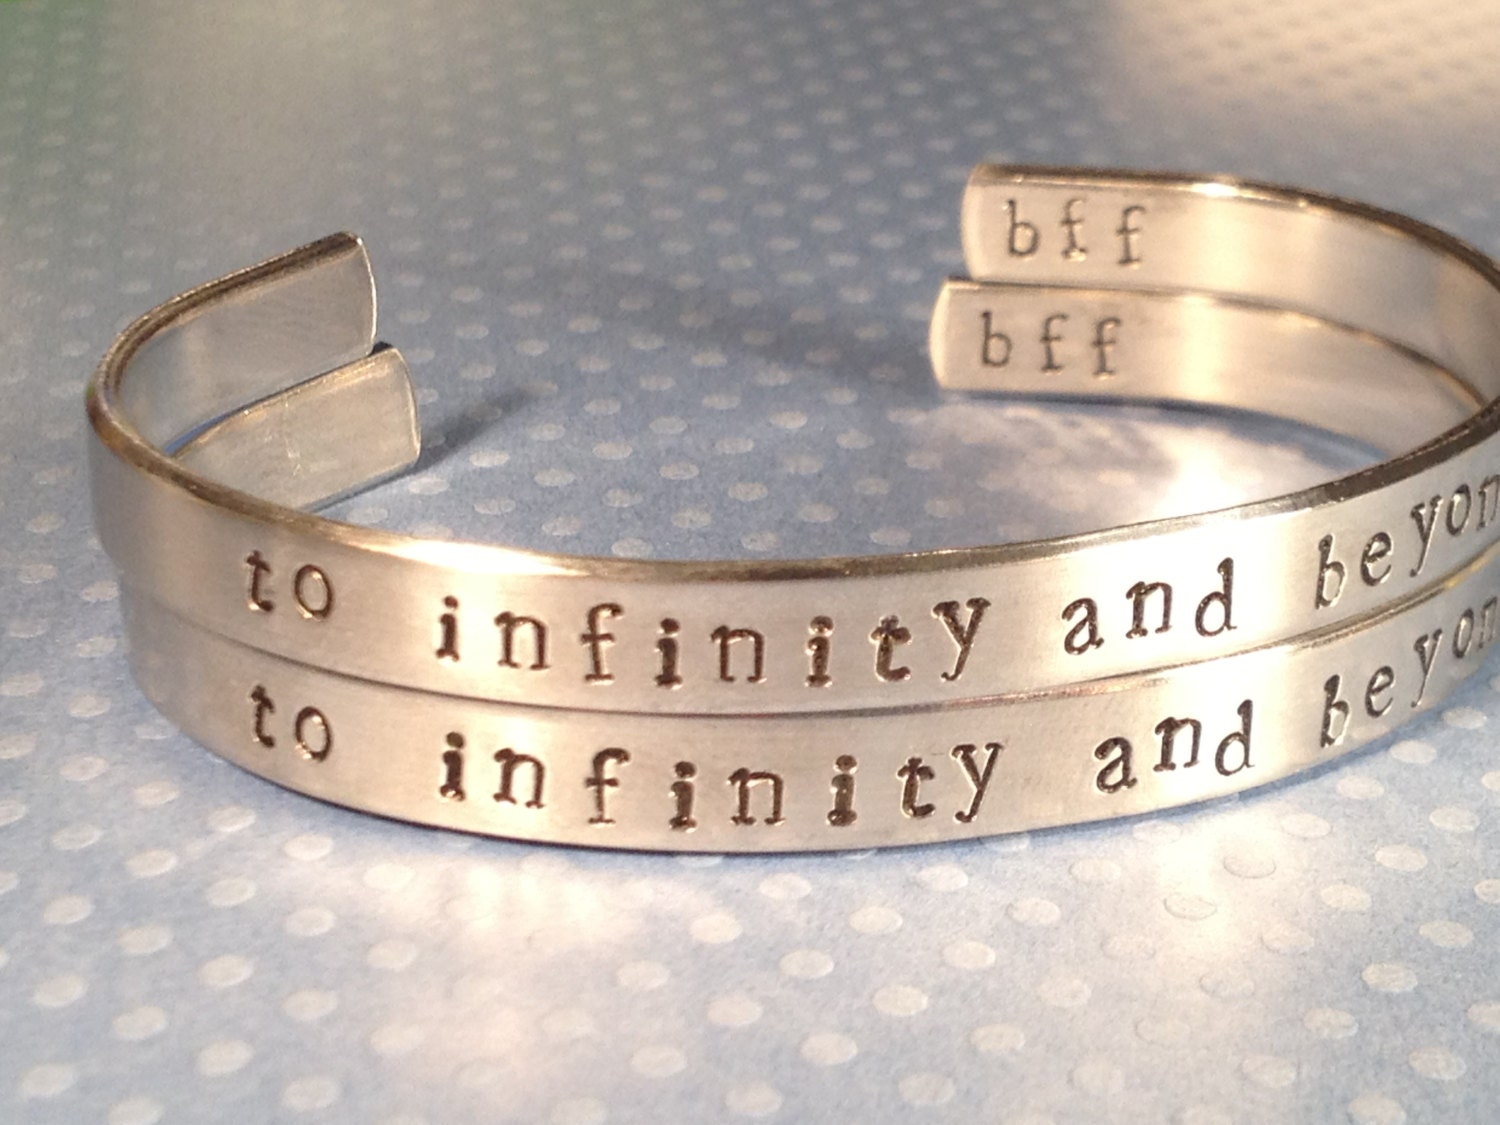 Best friend infinity and beyond